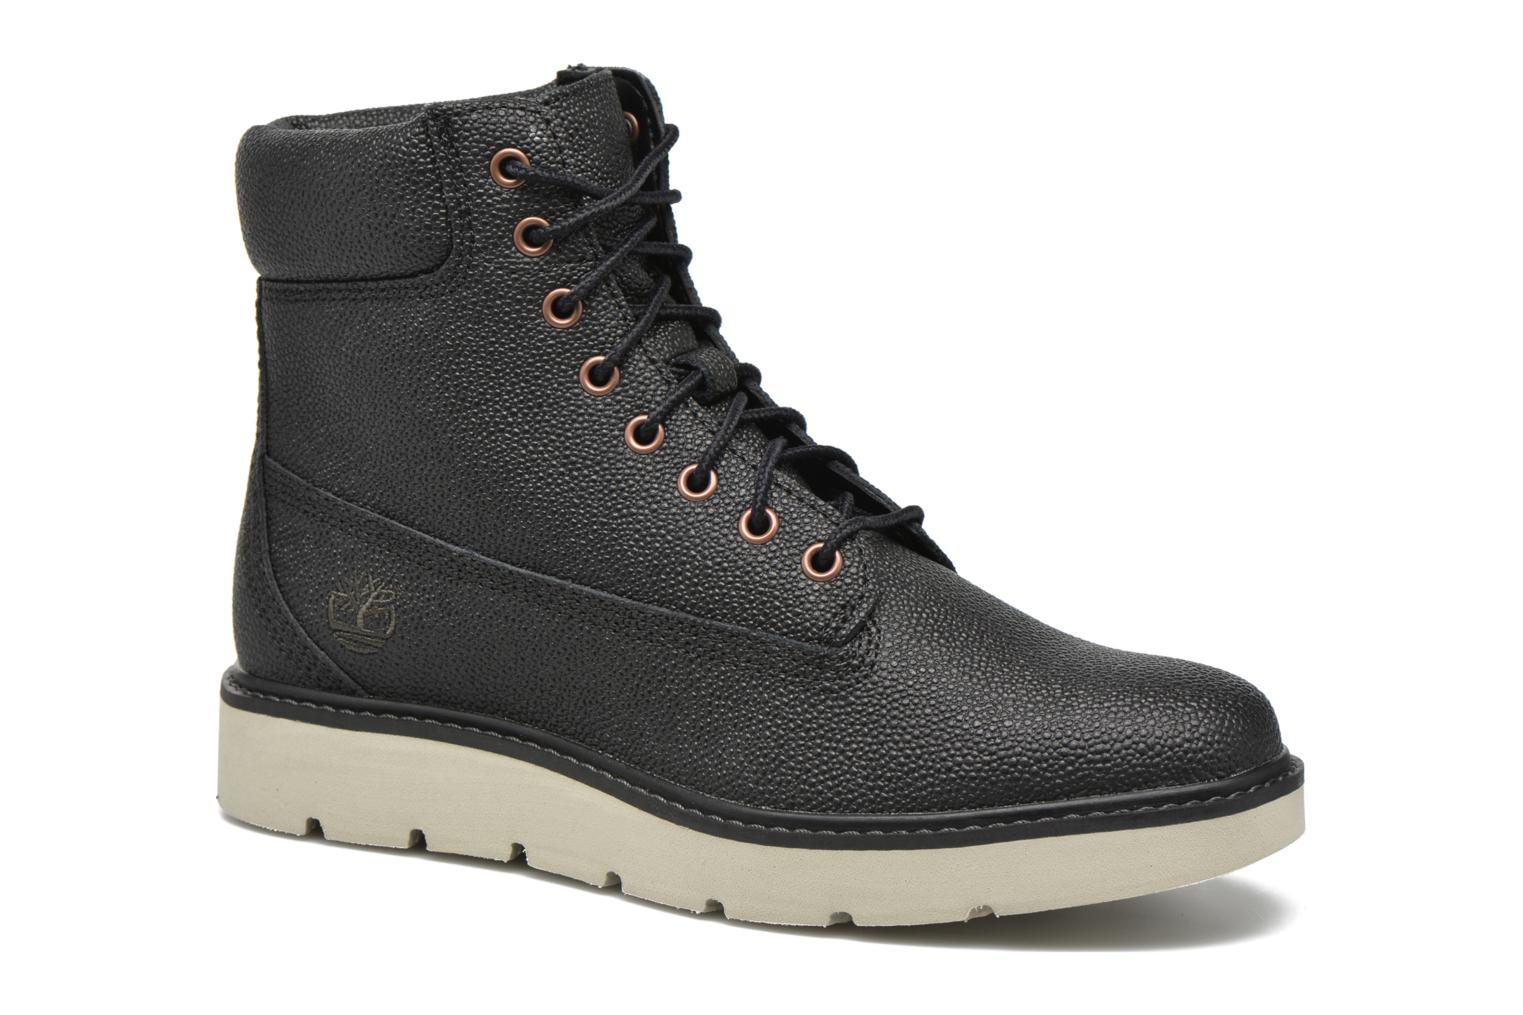 Kenniston 6in Lace Up Black Helcor Stingray